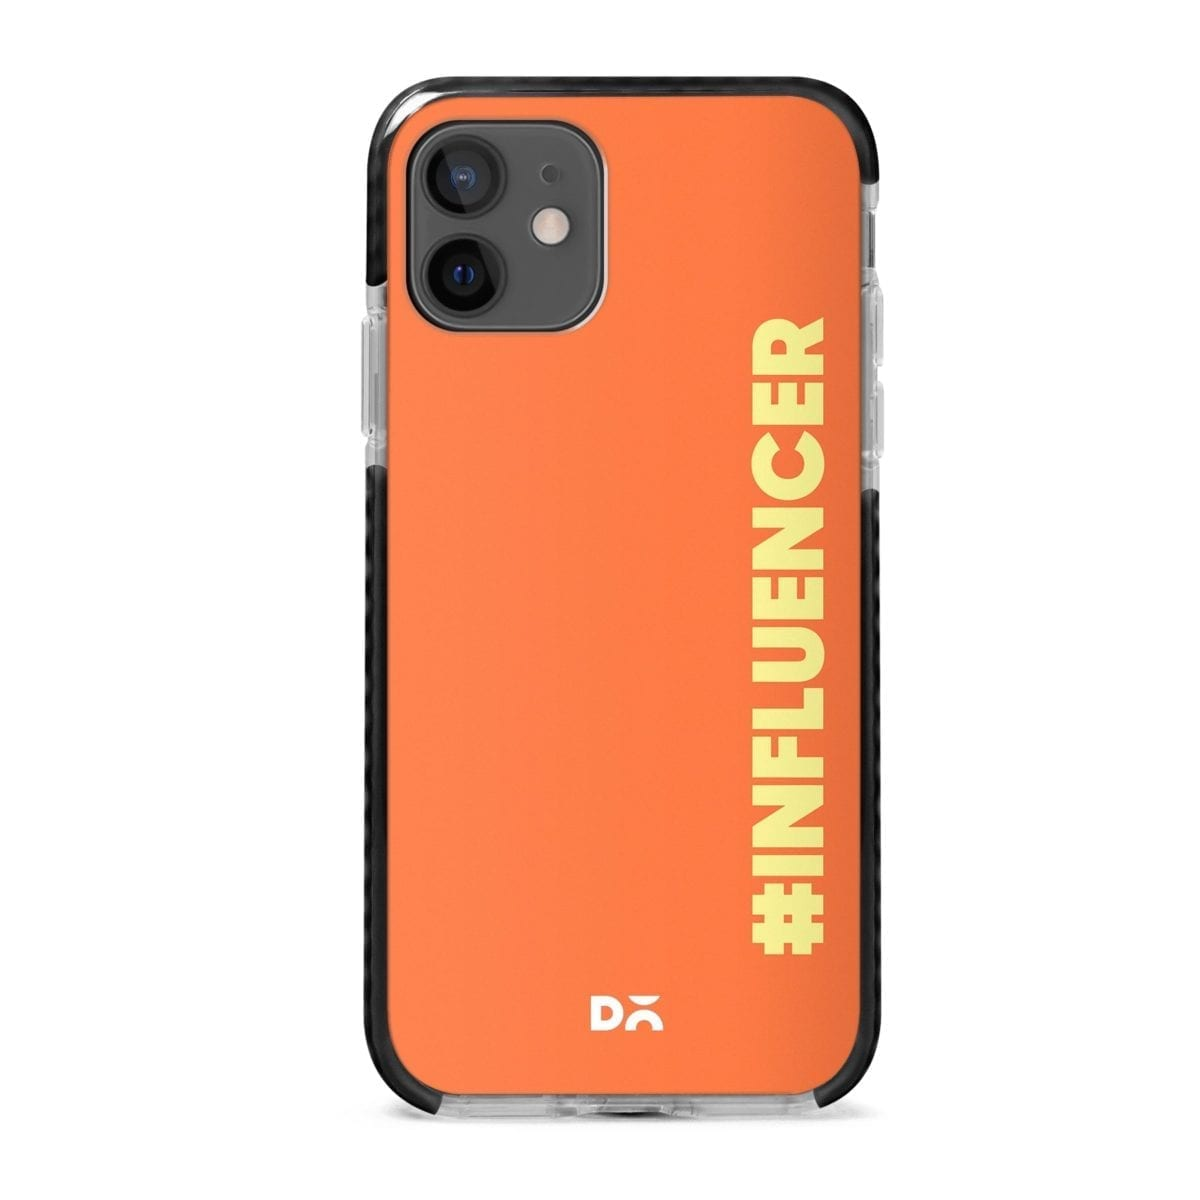 Influencer Stride Case Cover for Apple iPhone 12 Mini and Apple iPhone 12 with great design and shock proof | Klippik | Online Shopping | Kuwait UAE Saudi